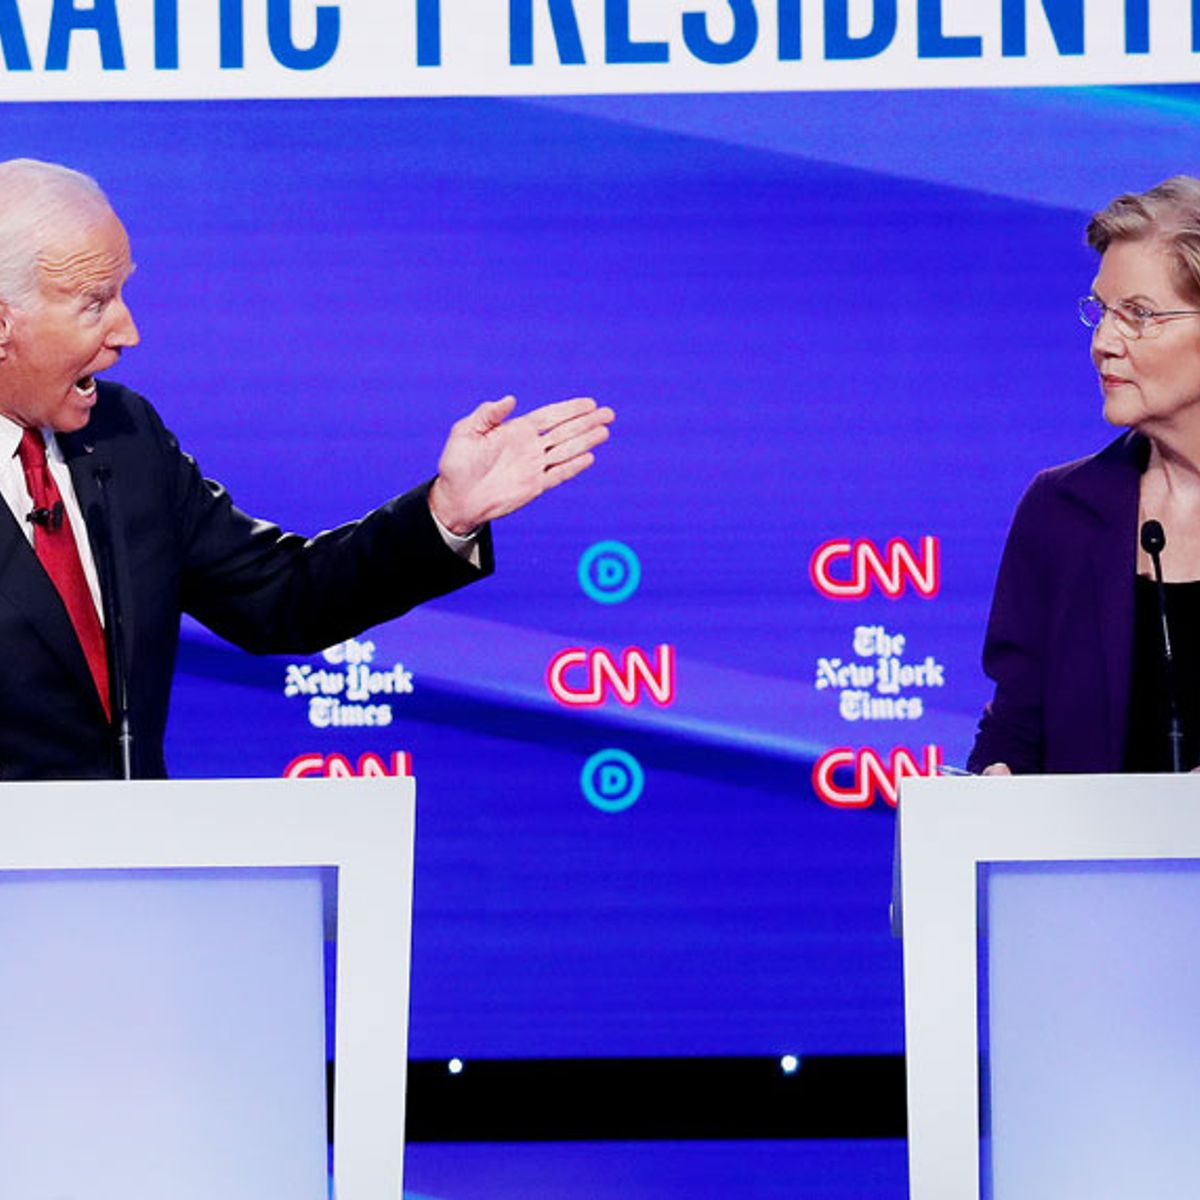 Democratic debate: Elizabeth Warren attacked by moderate rivals over wealth tax proposal